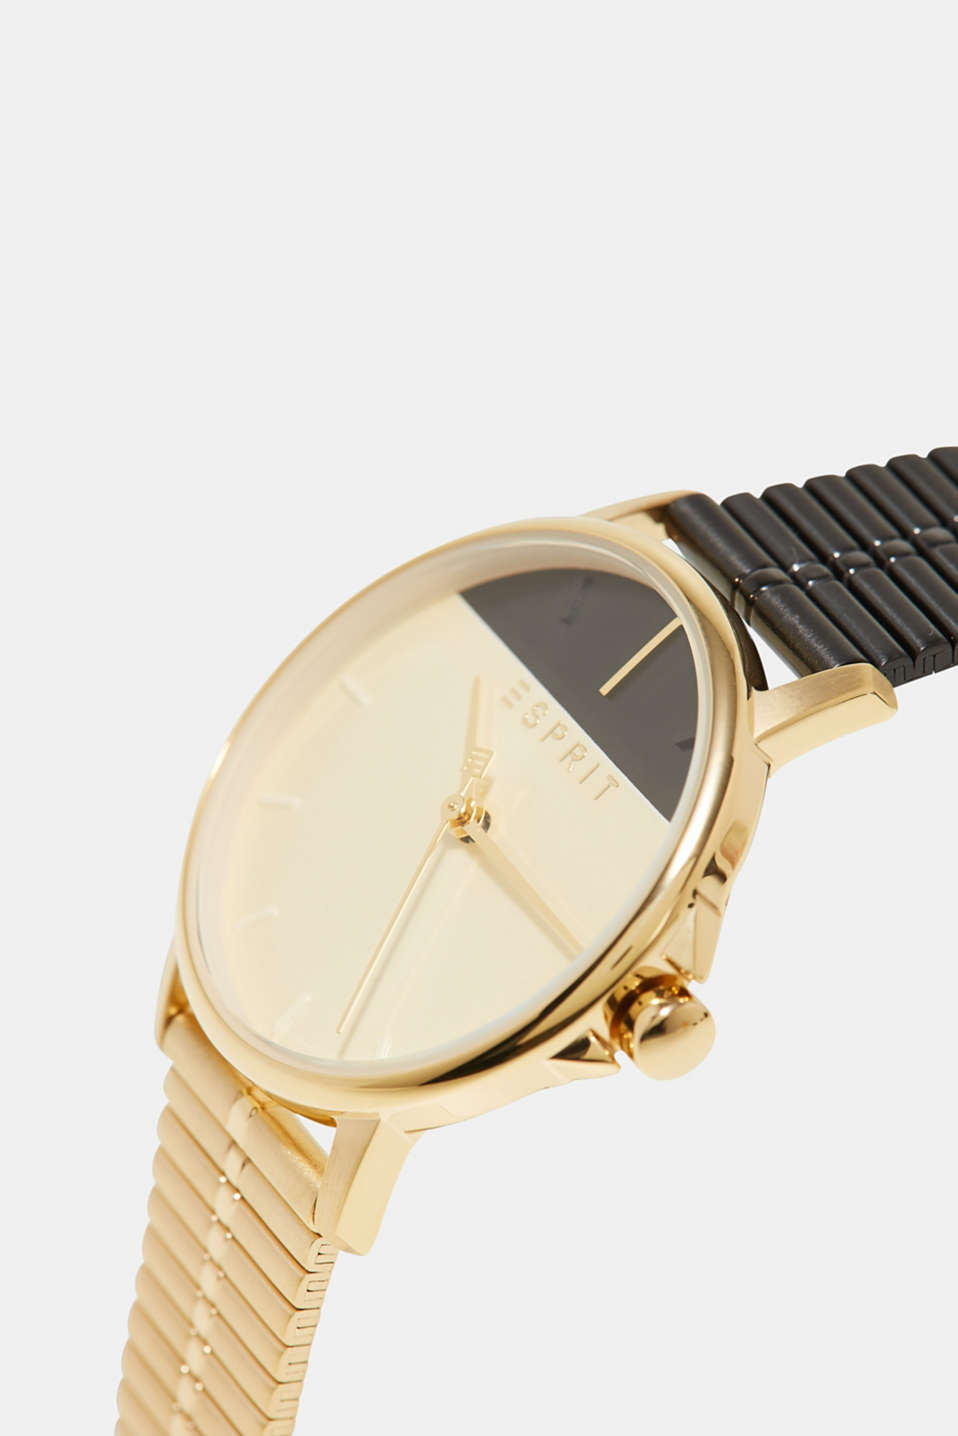 Stainless steel watch in a two-tone look